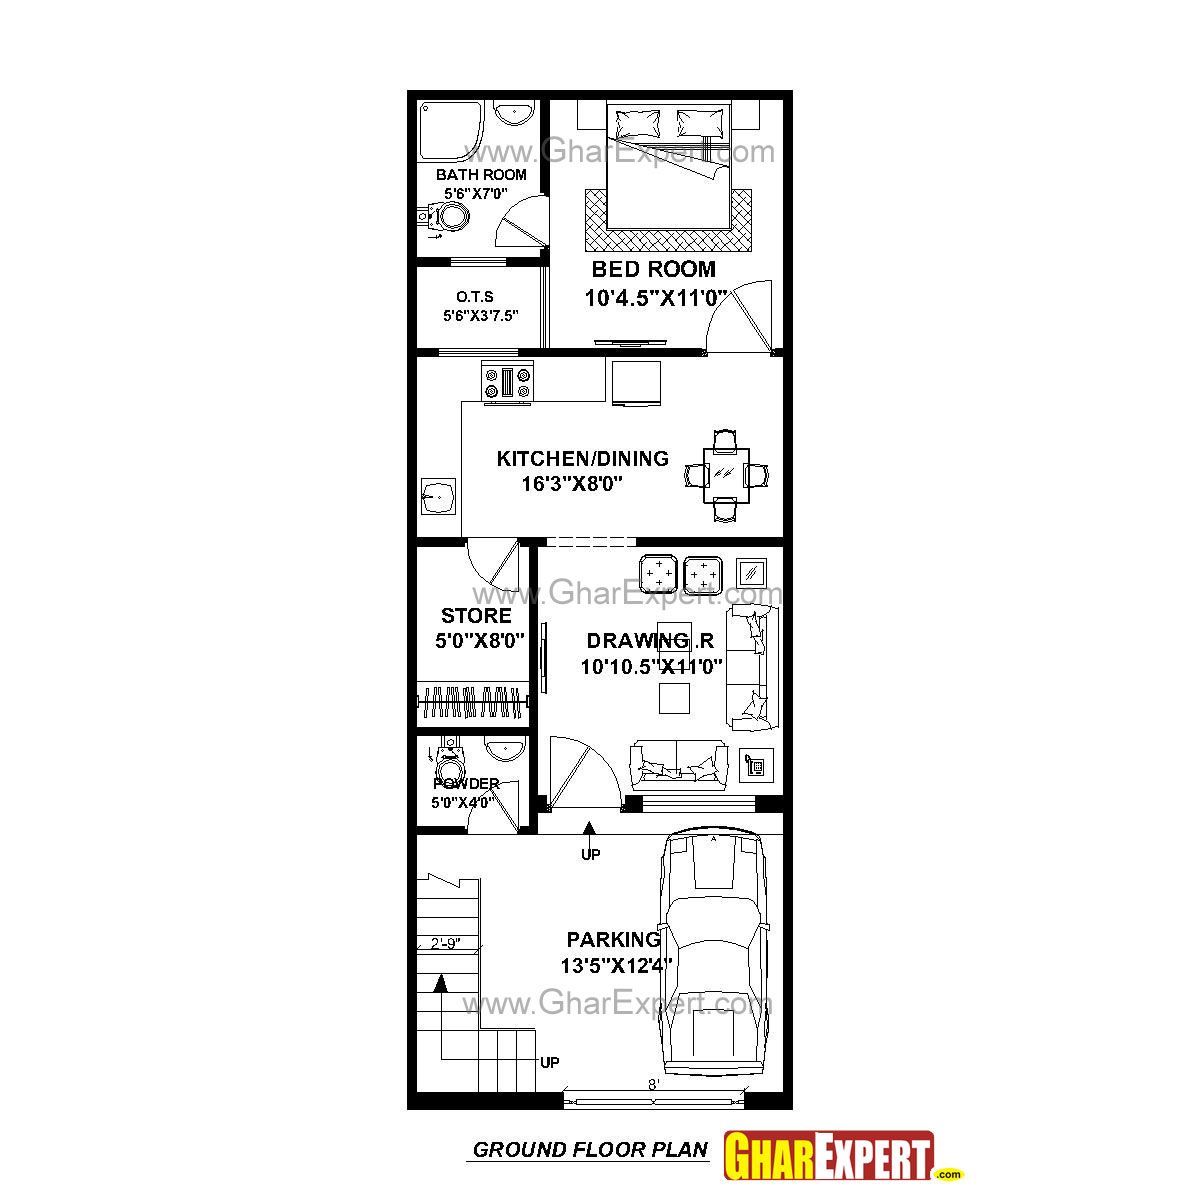 House Plan For 17 Feet By 45 Feet Plot (Plot Size 85